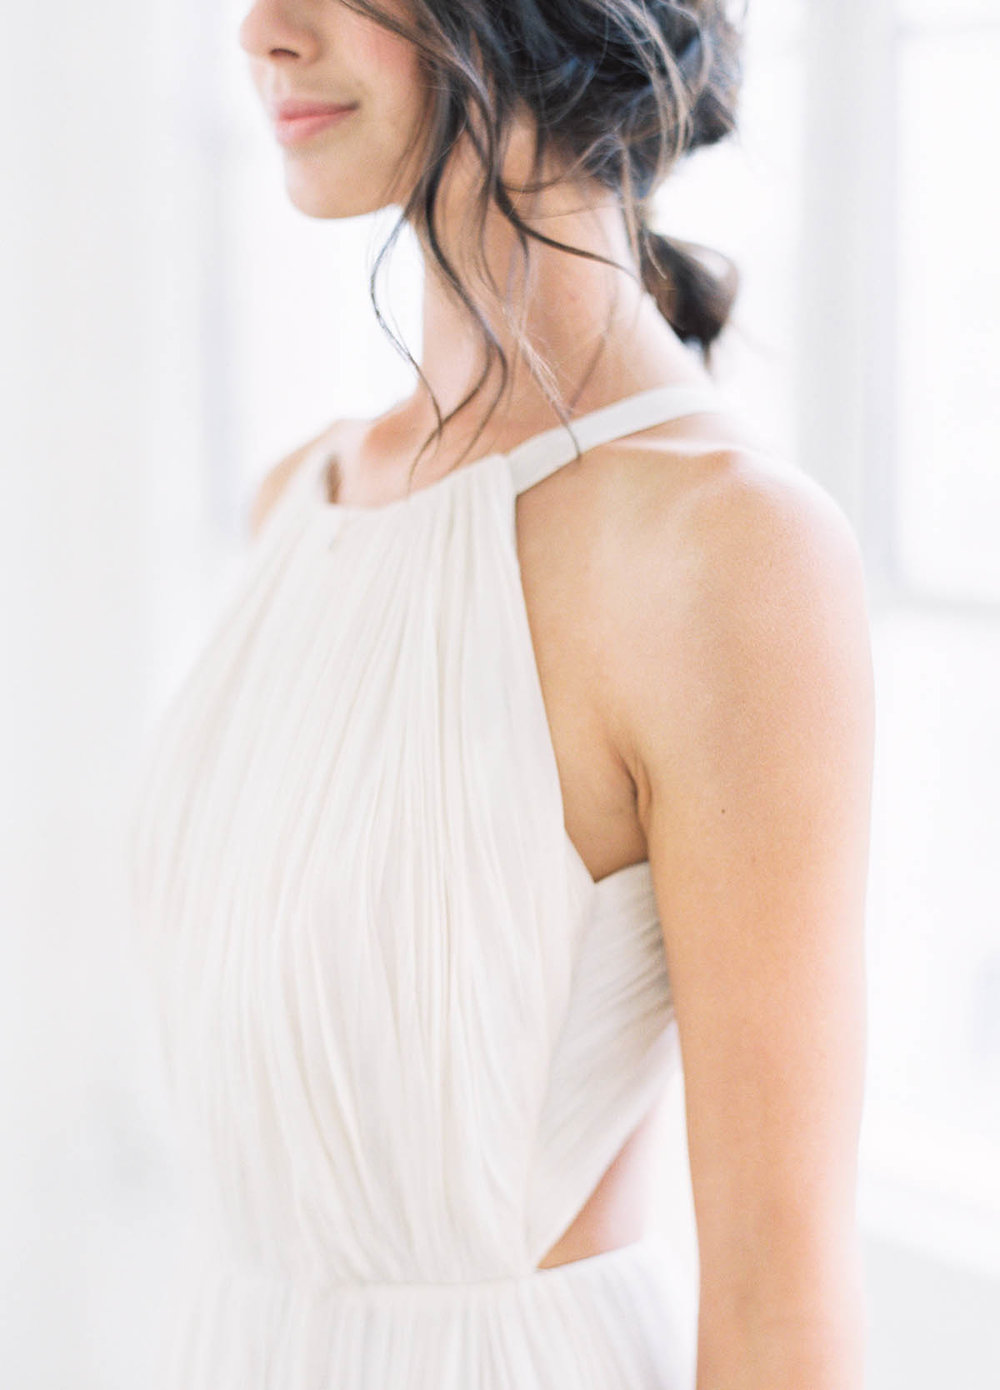 Sally Pinera Photography_DTLA Modern Minimalism Wedding Inspiration_-132.jpg